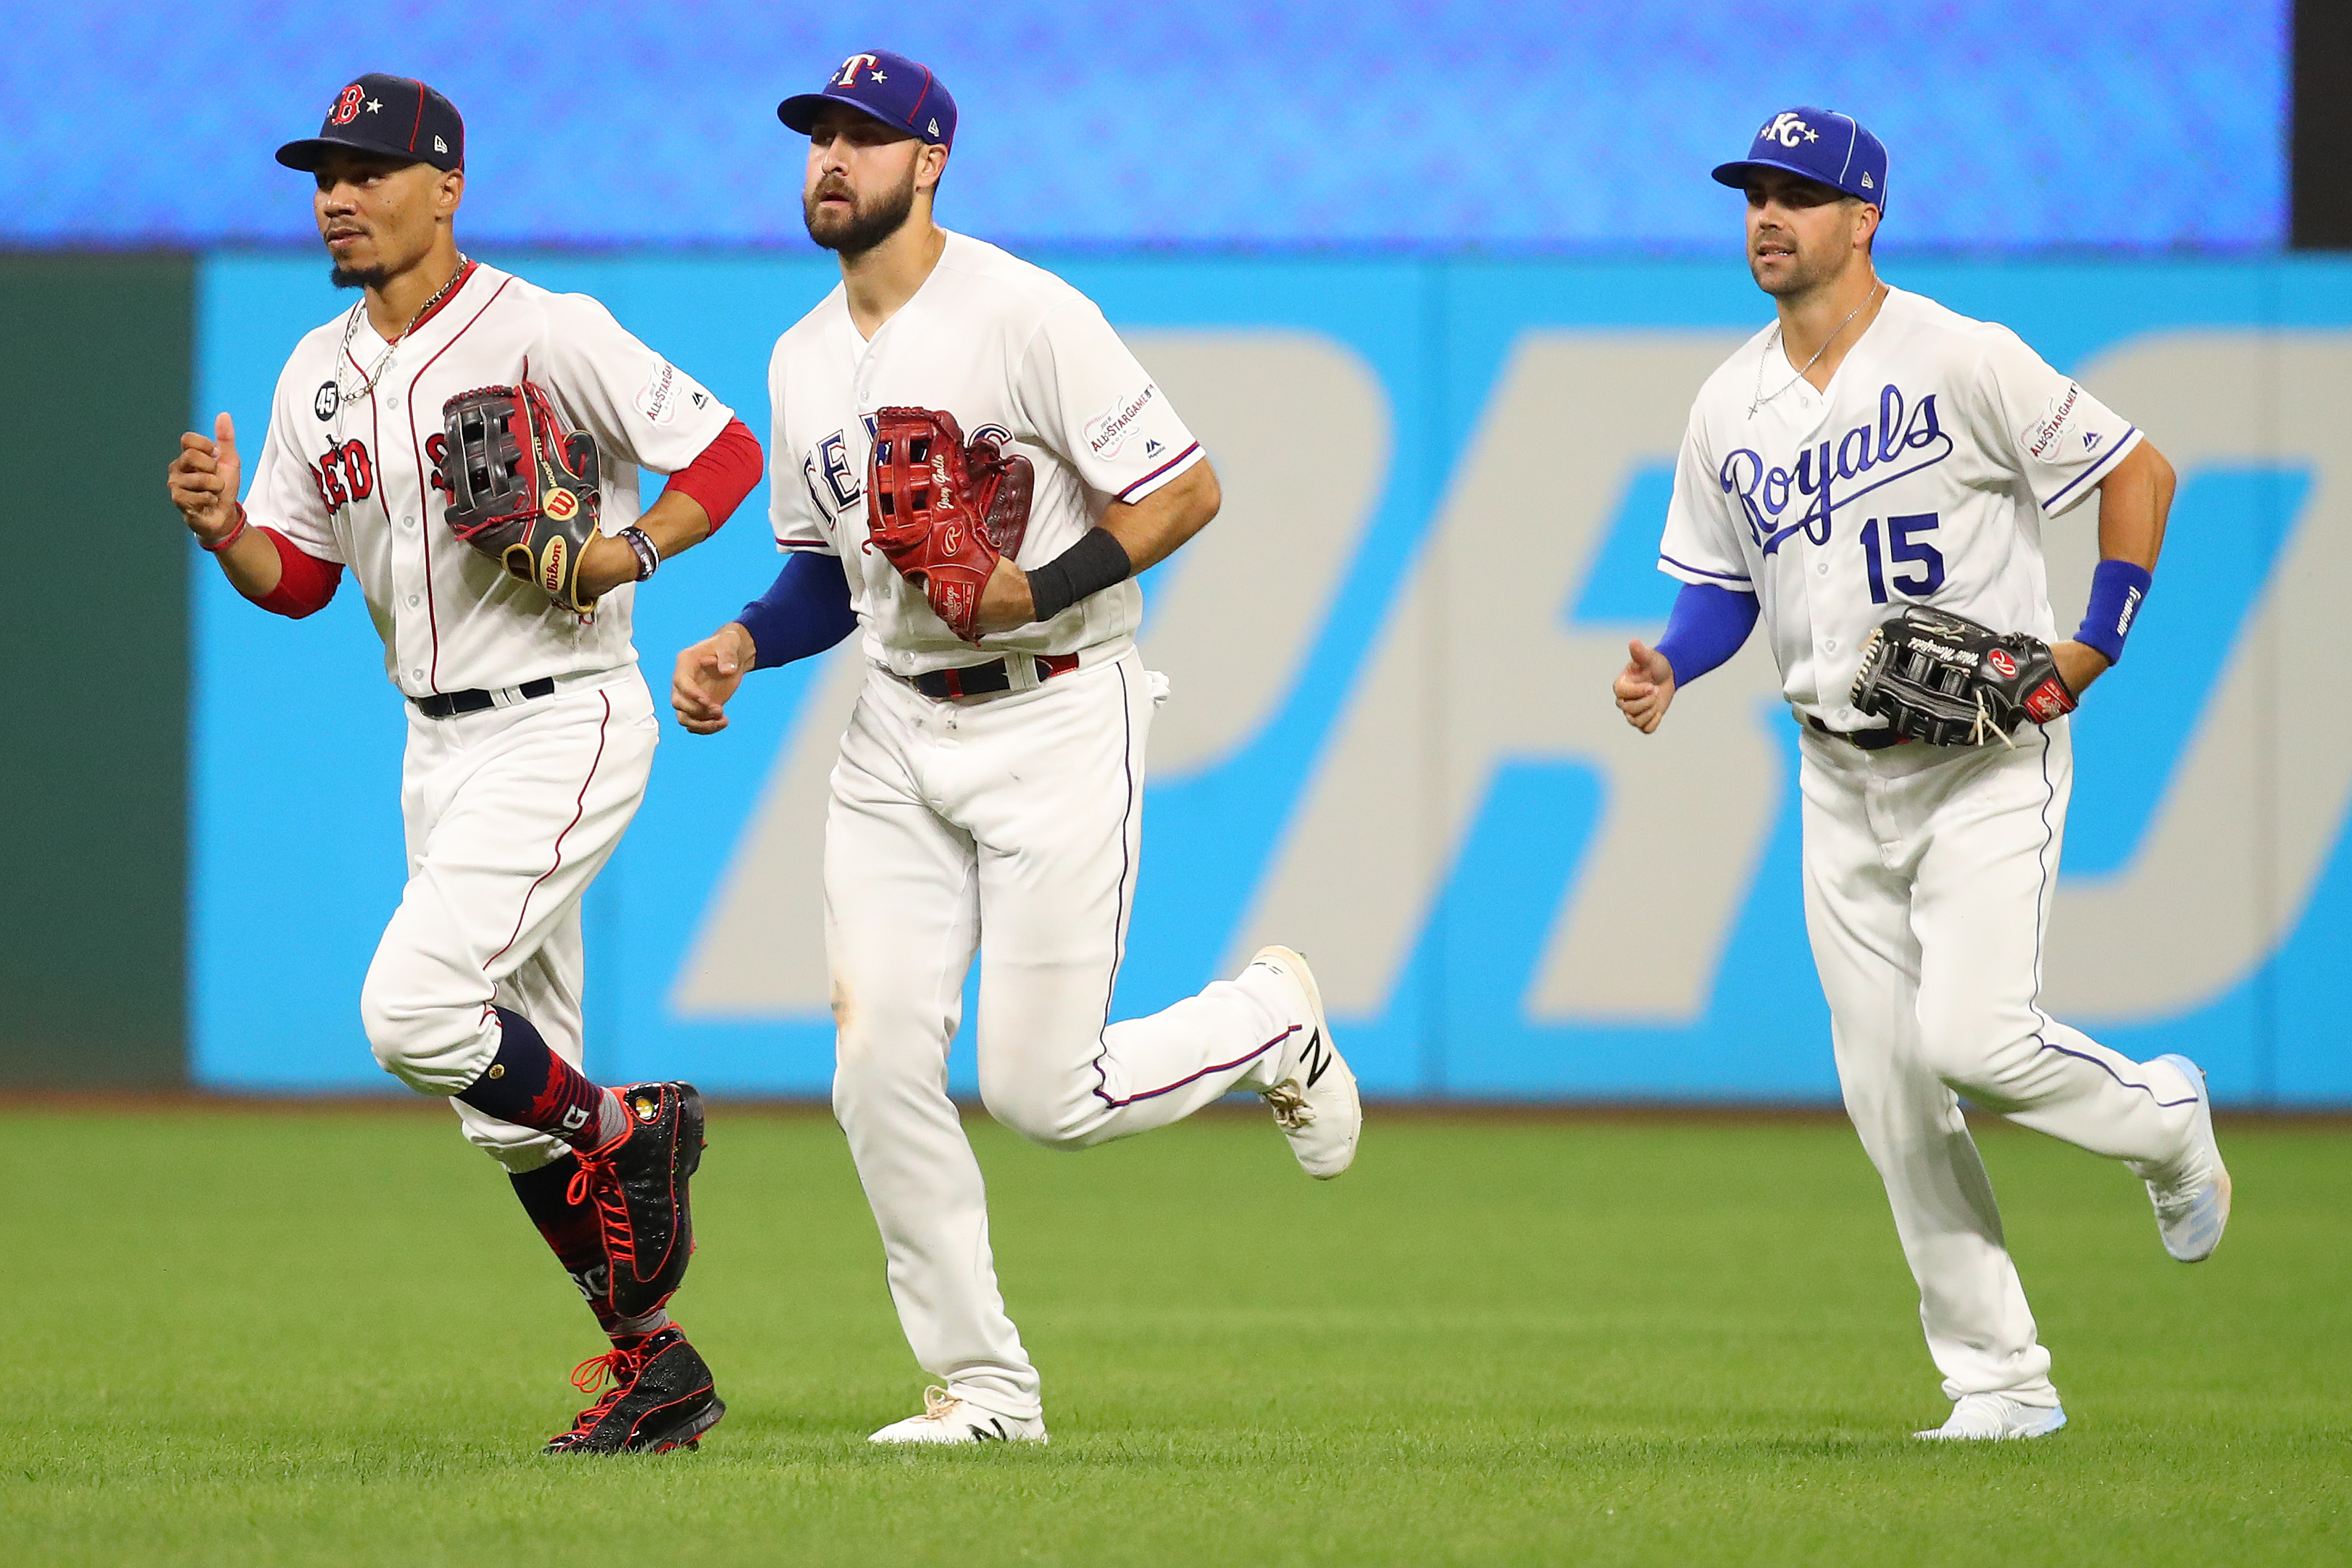 Mookie Betts #50 of the Boston Red Sox, Joey Gallo #13 of the Texas Rangers and Whit Merrifield #15 of the Kansas City Royals during the 2019 MLB All-Star Game at Progressive Field on July 09, 2019 in Cleveland, Ohio.